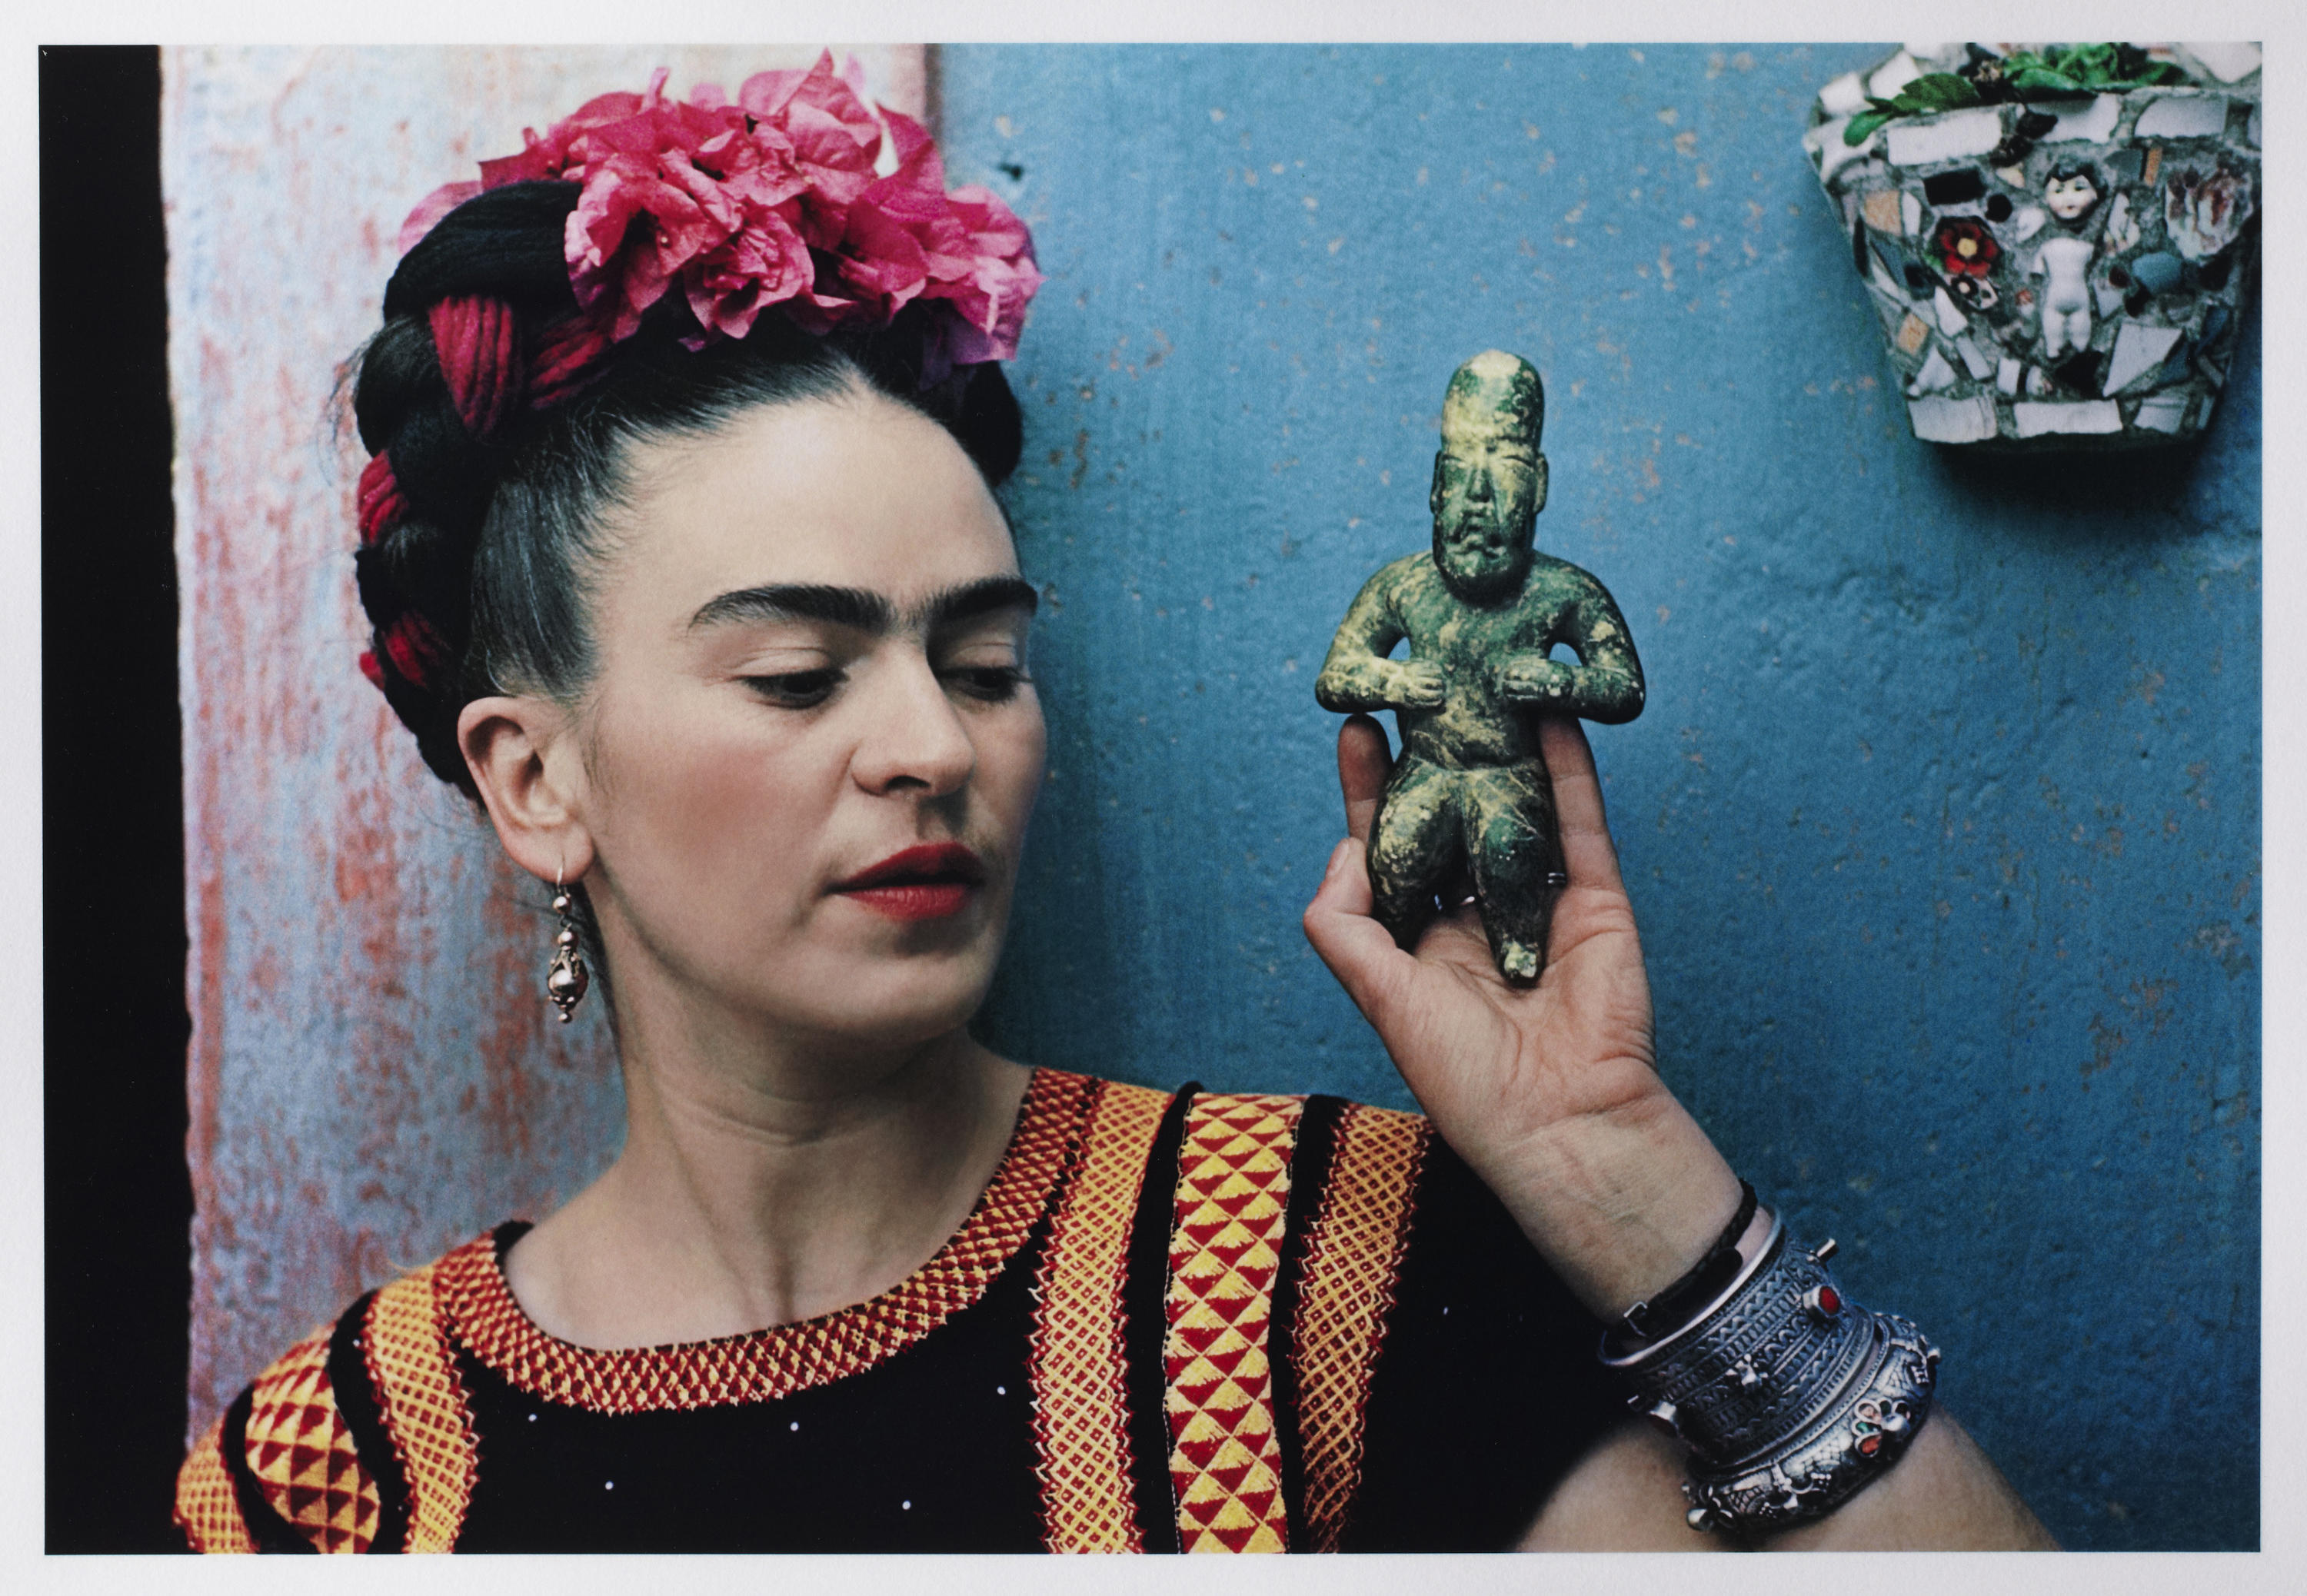 frida kahlo olmèque